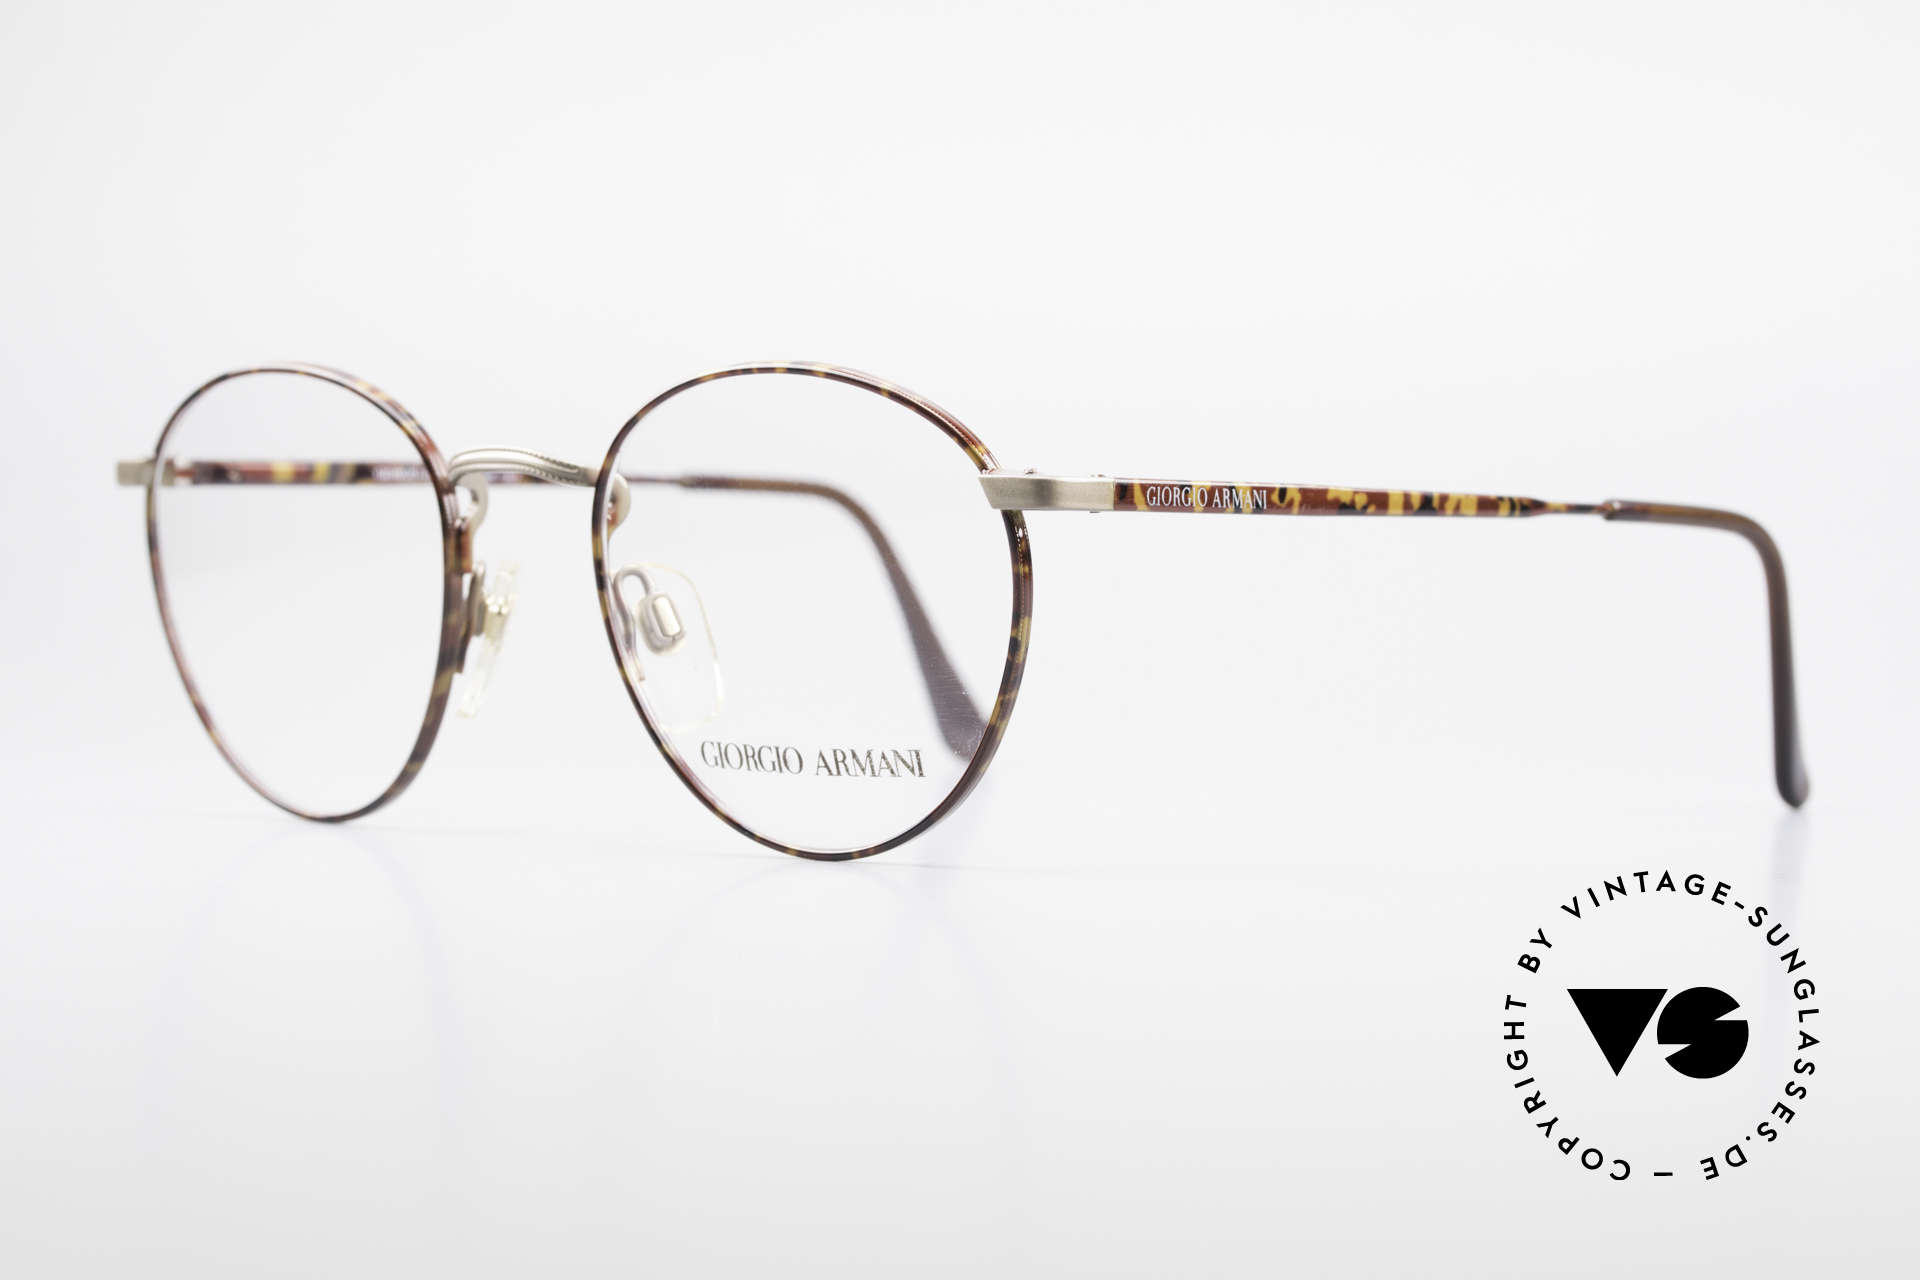 Giorgio Armani 166 No Retro Glasses 80's Panto, very noble frame finish in gray and chestnut brown, Made for Men